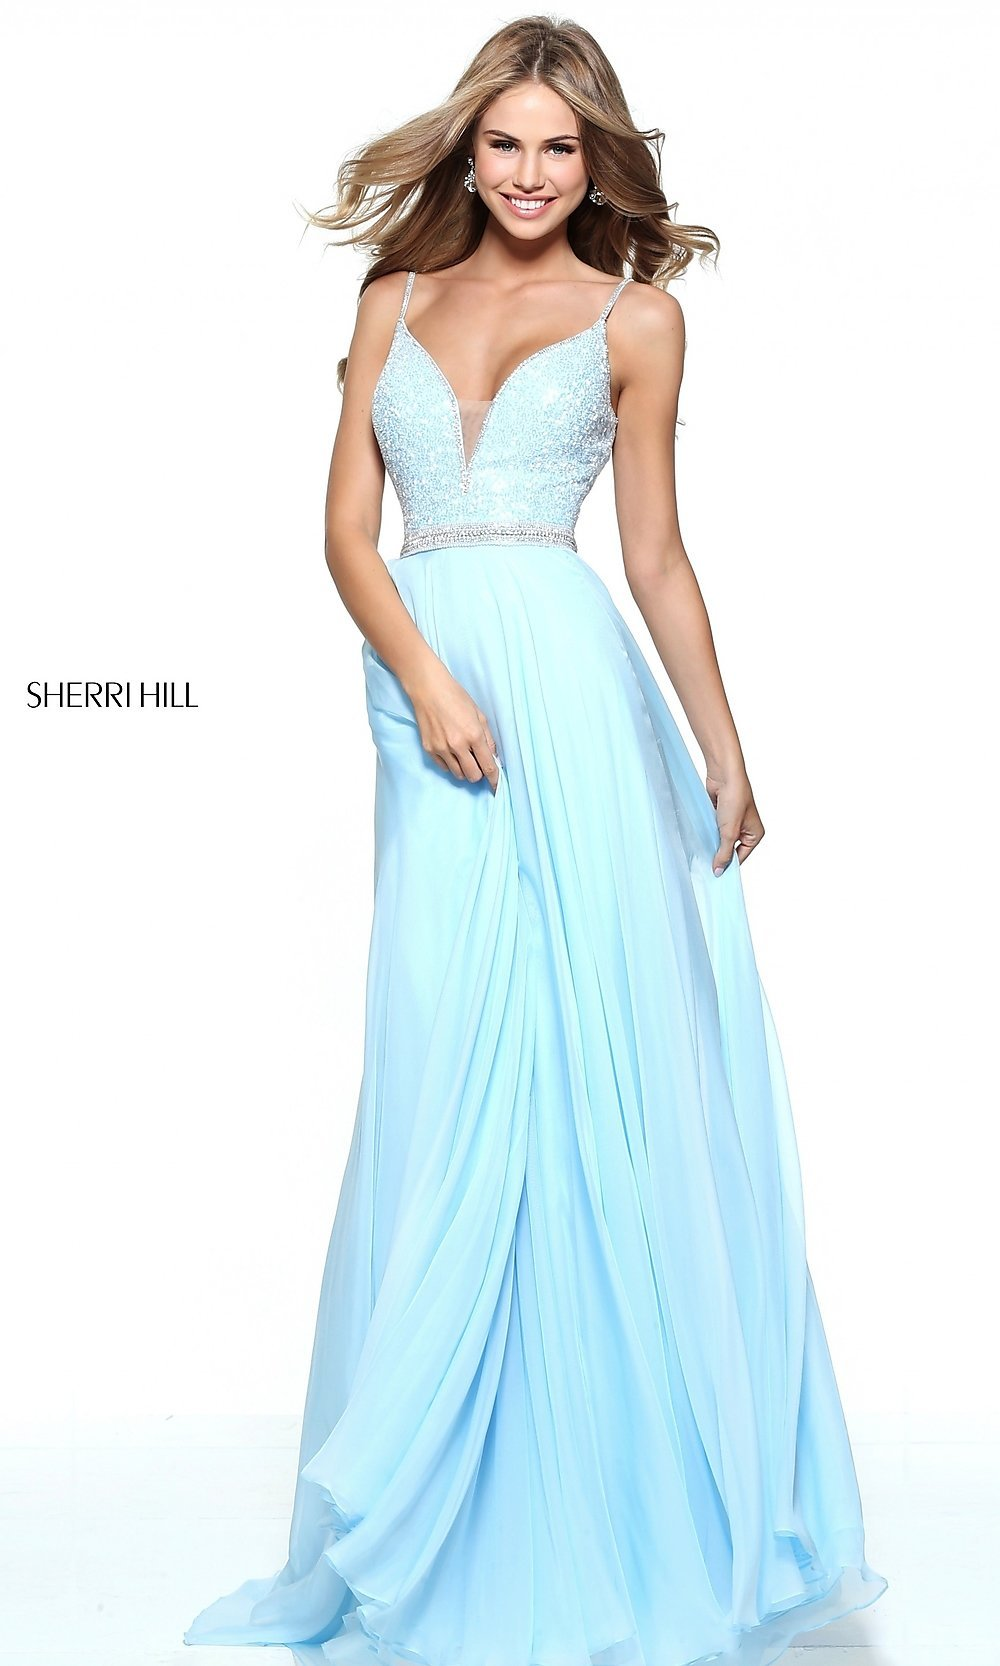 Icy Blue Formal Dress Tight